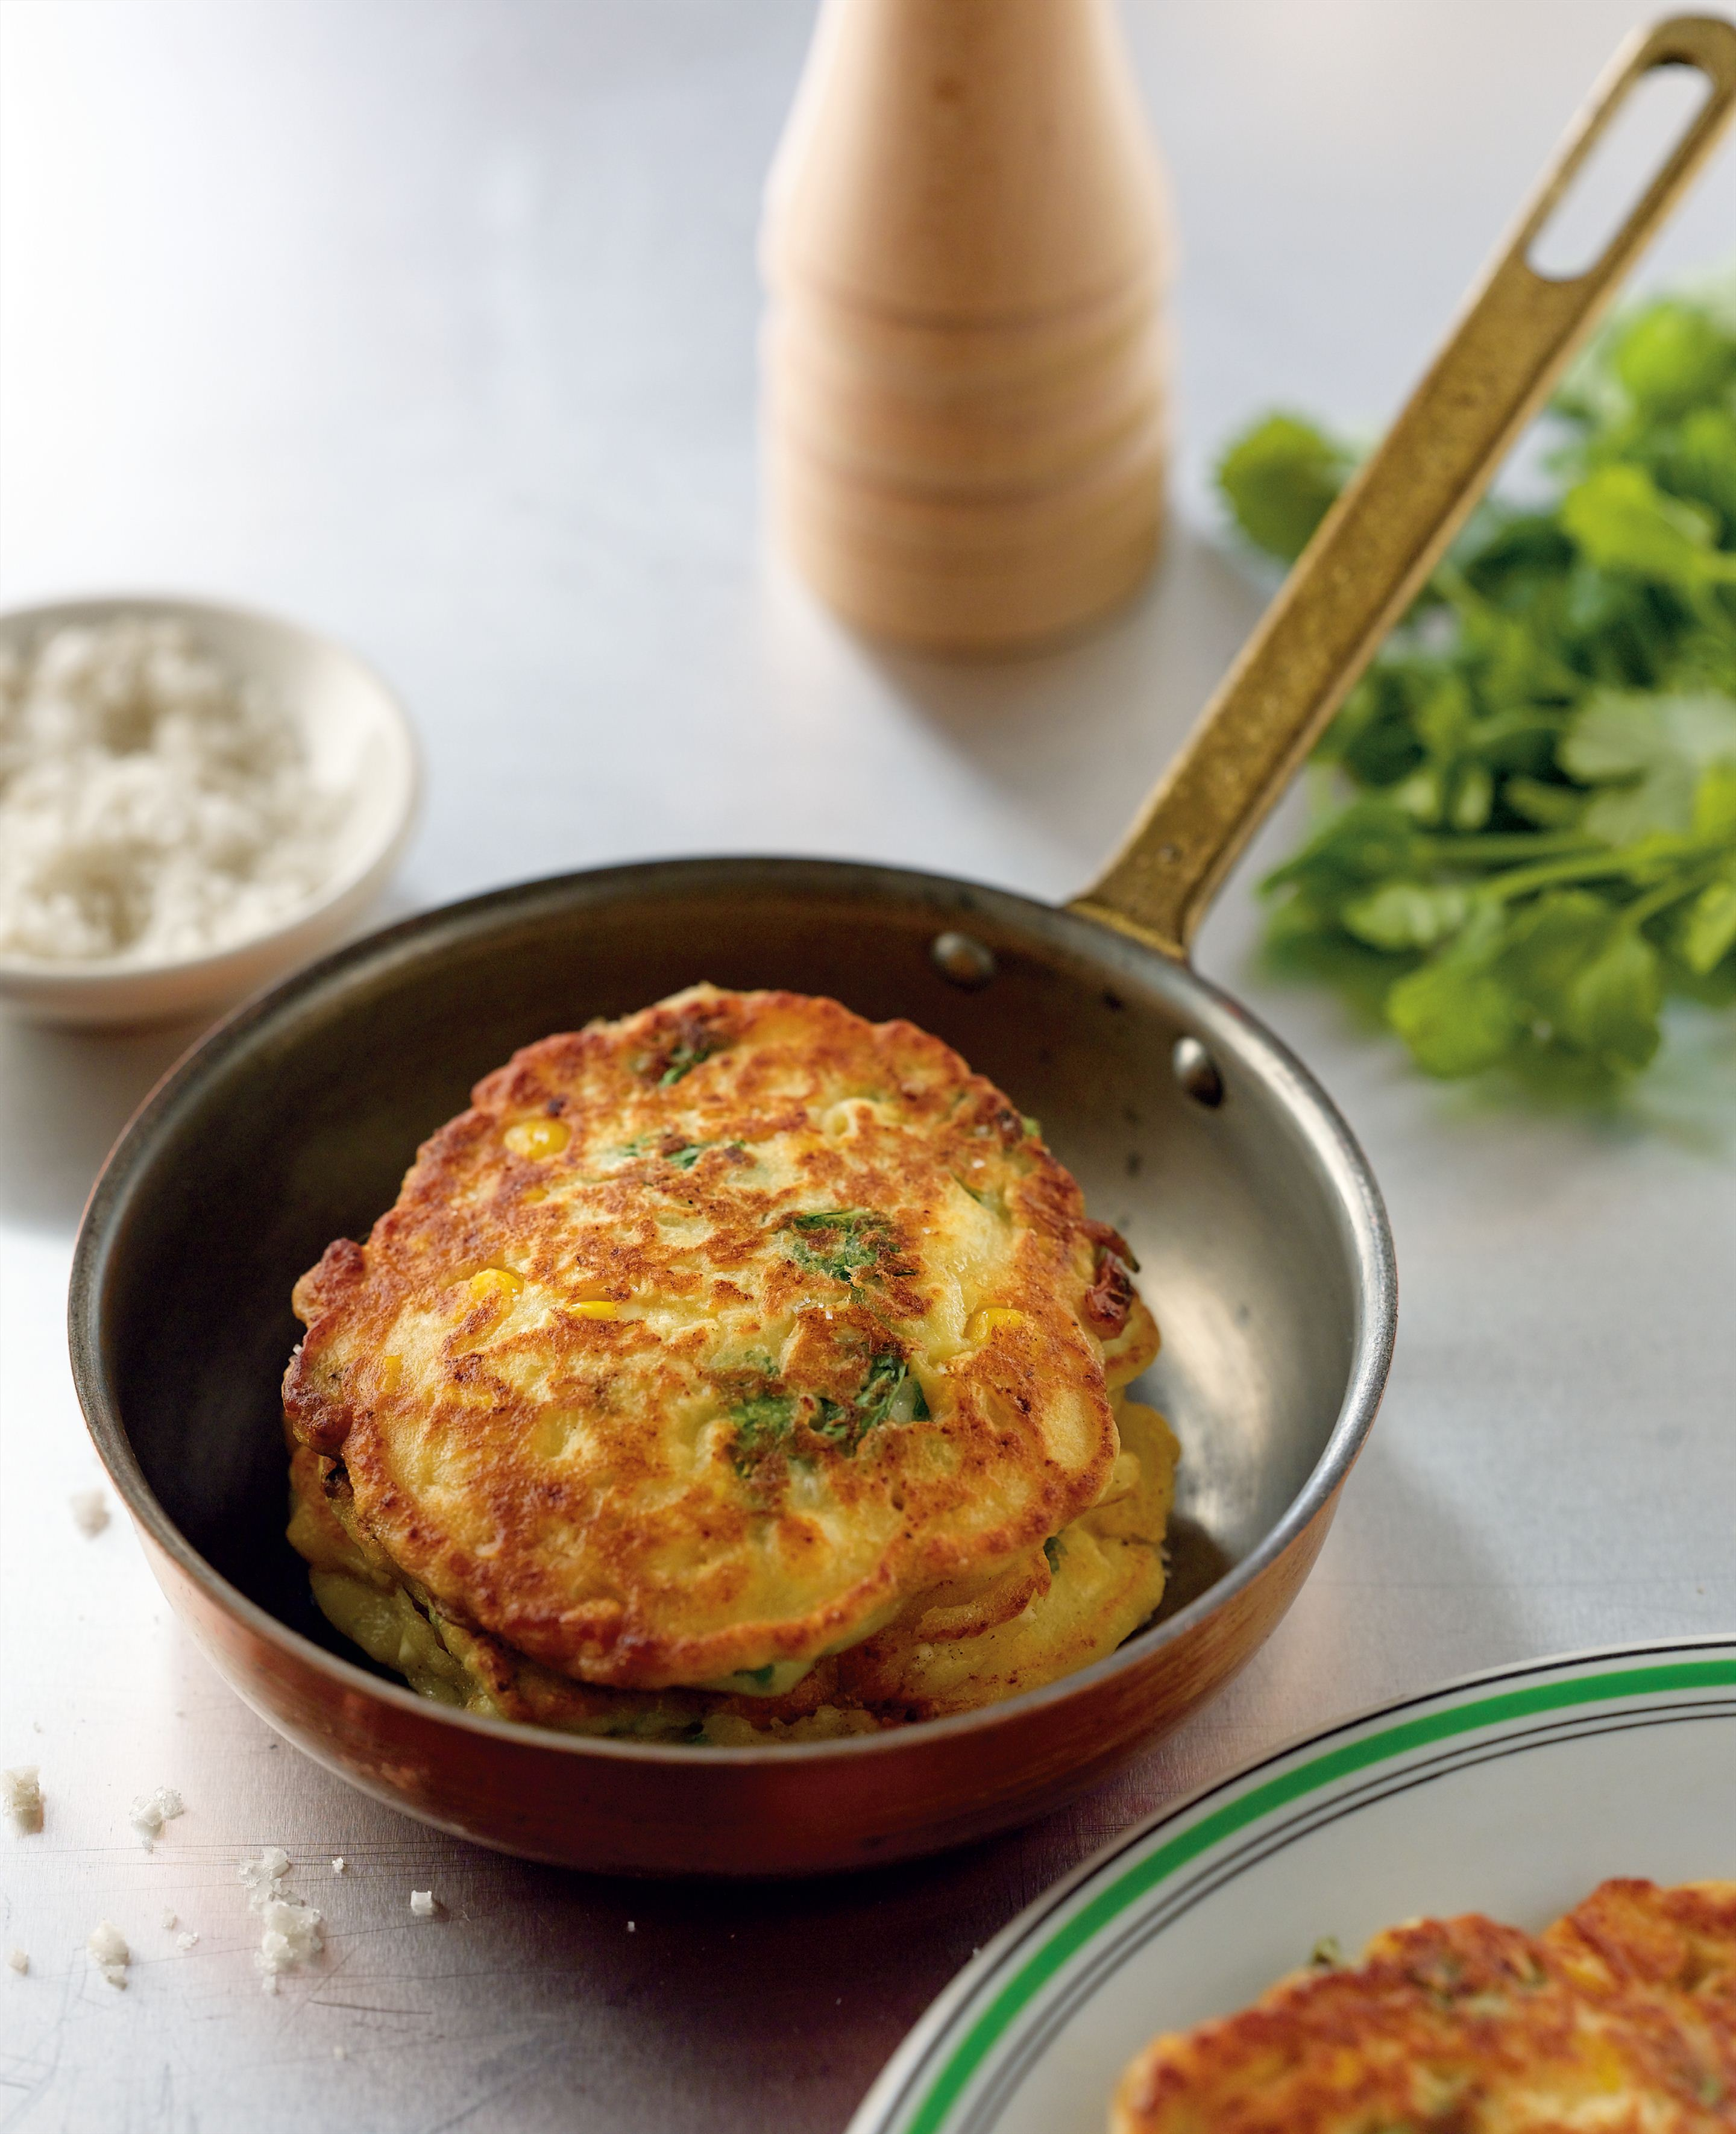 Corn and coriander hotcakes